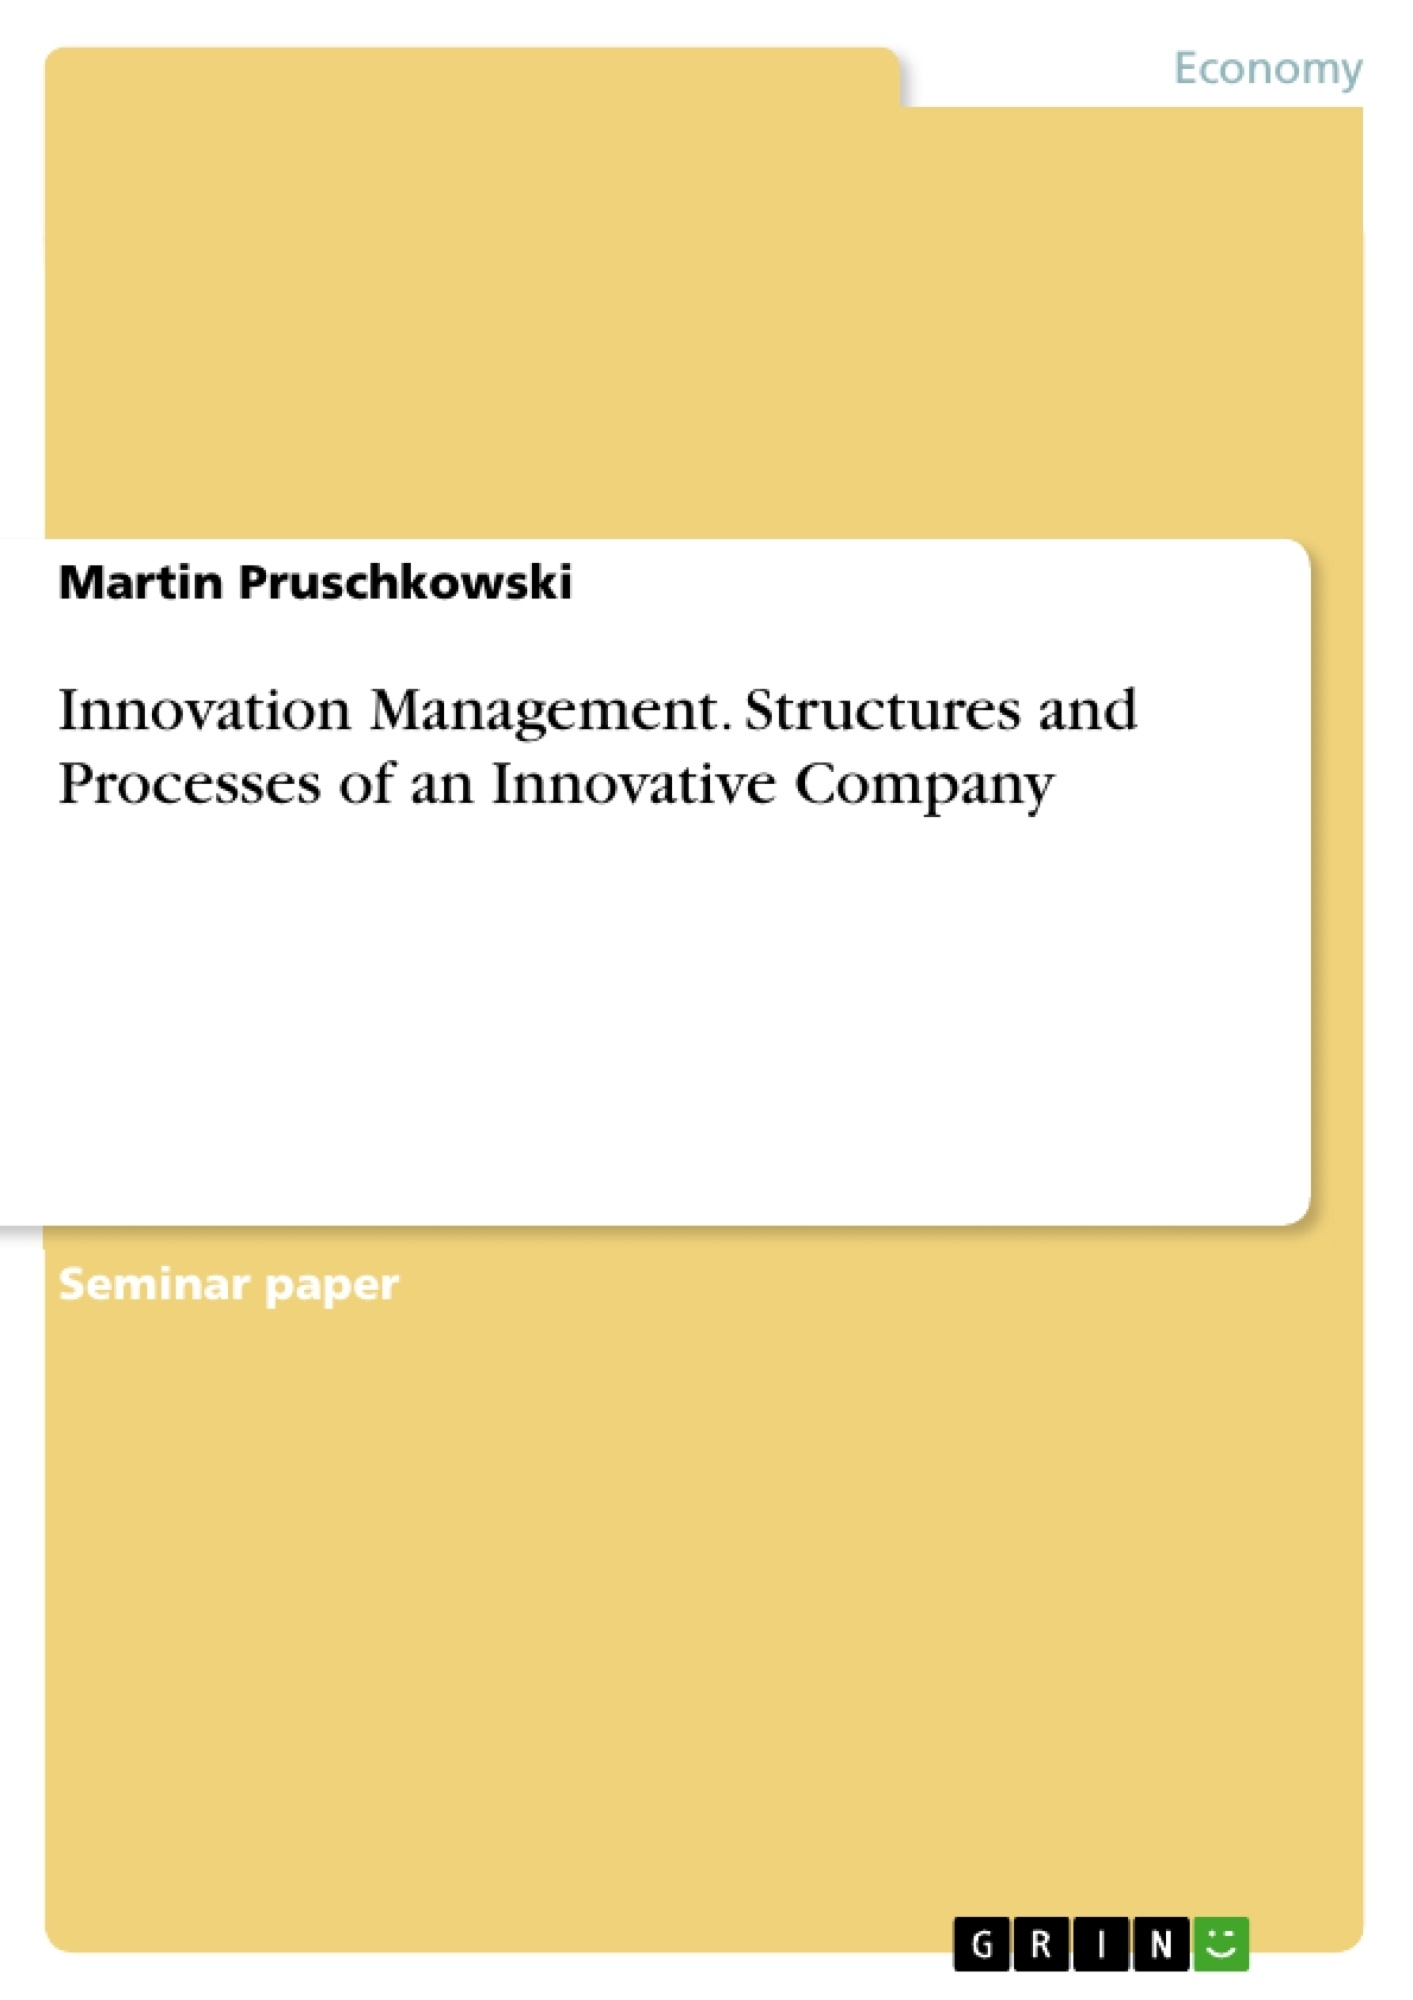 Title: Innovation Management. Structures and Processes of an Innovative Company